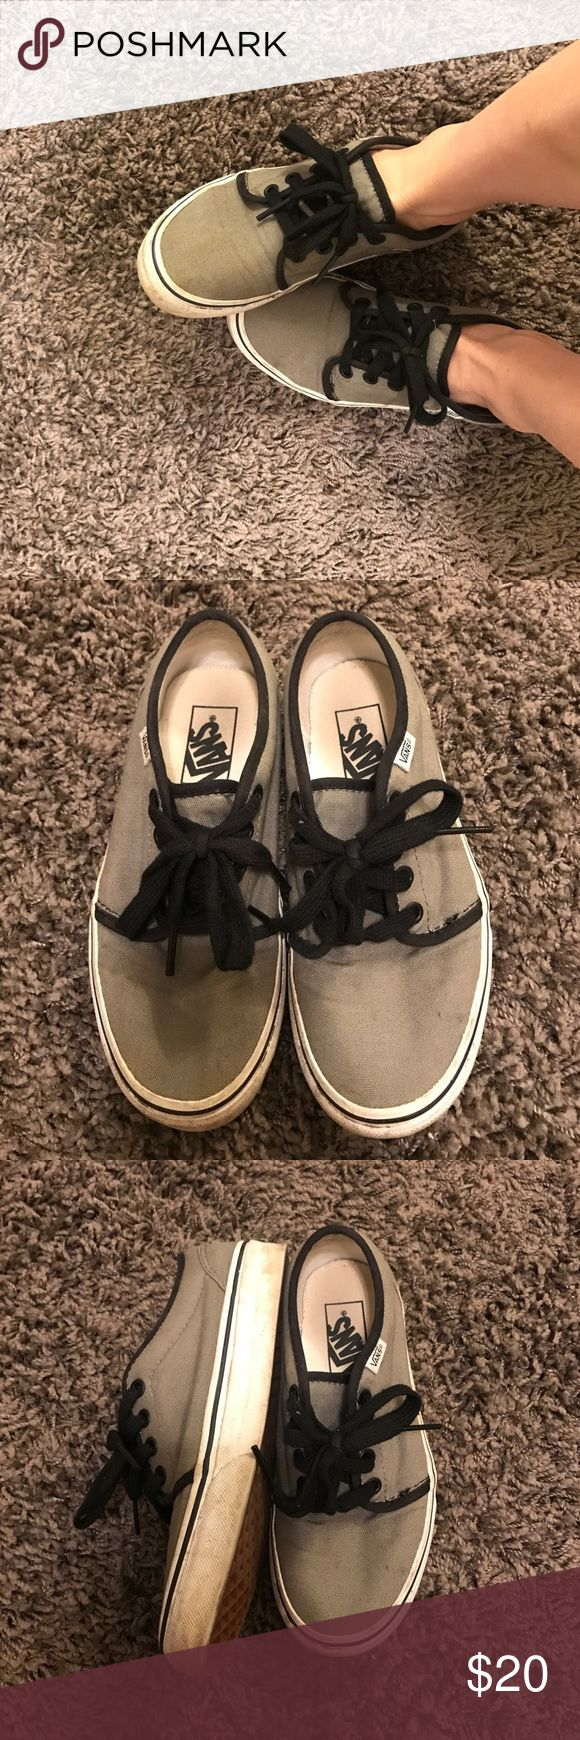 Vans - 106 vulcanized Used! But in good condition. The rubber is a little dirty but can be washed off. The bottoms heel is not worn at all. Worn a couple of times. MENS 4/ WOMENS 5.5 Vans Shoes Sneakers